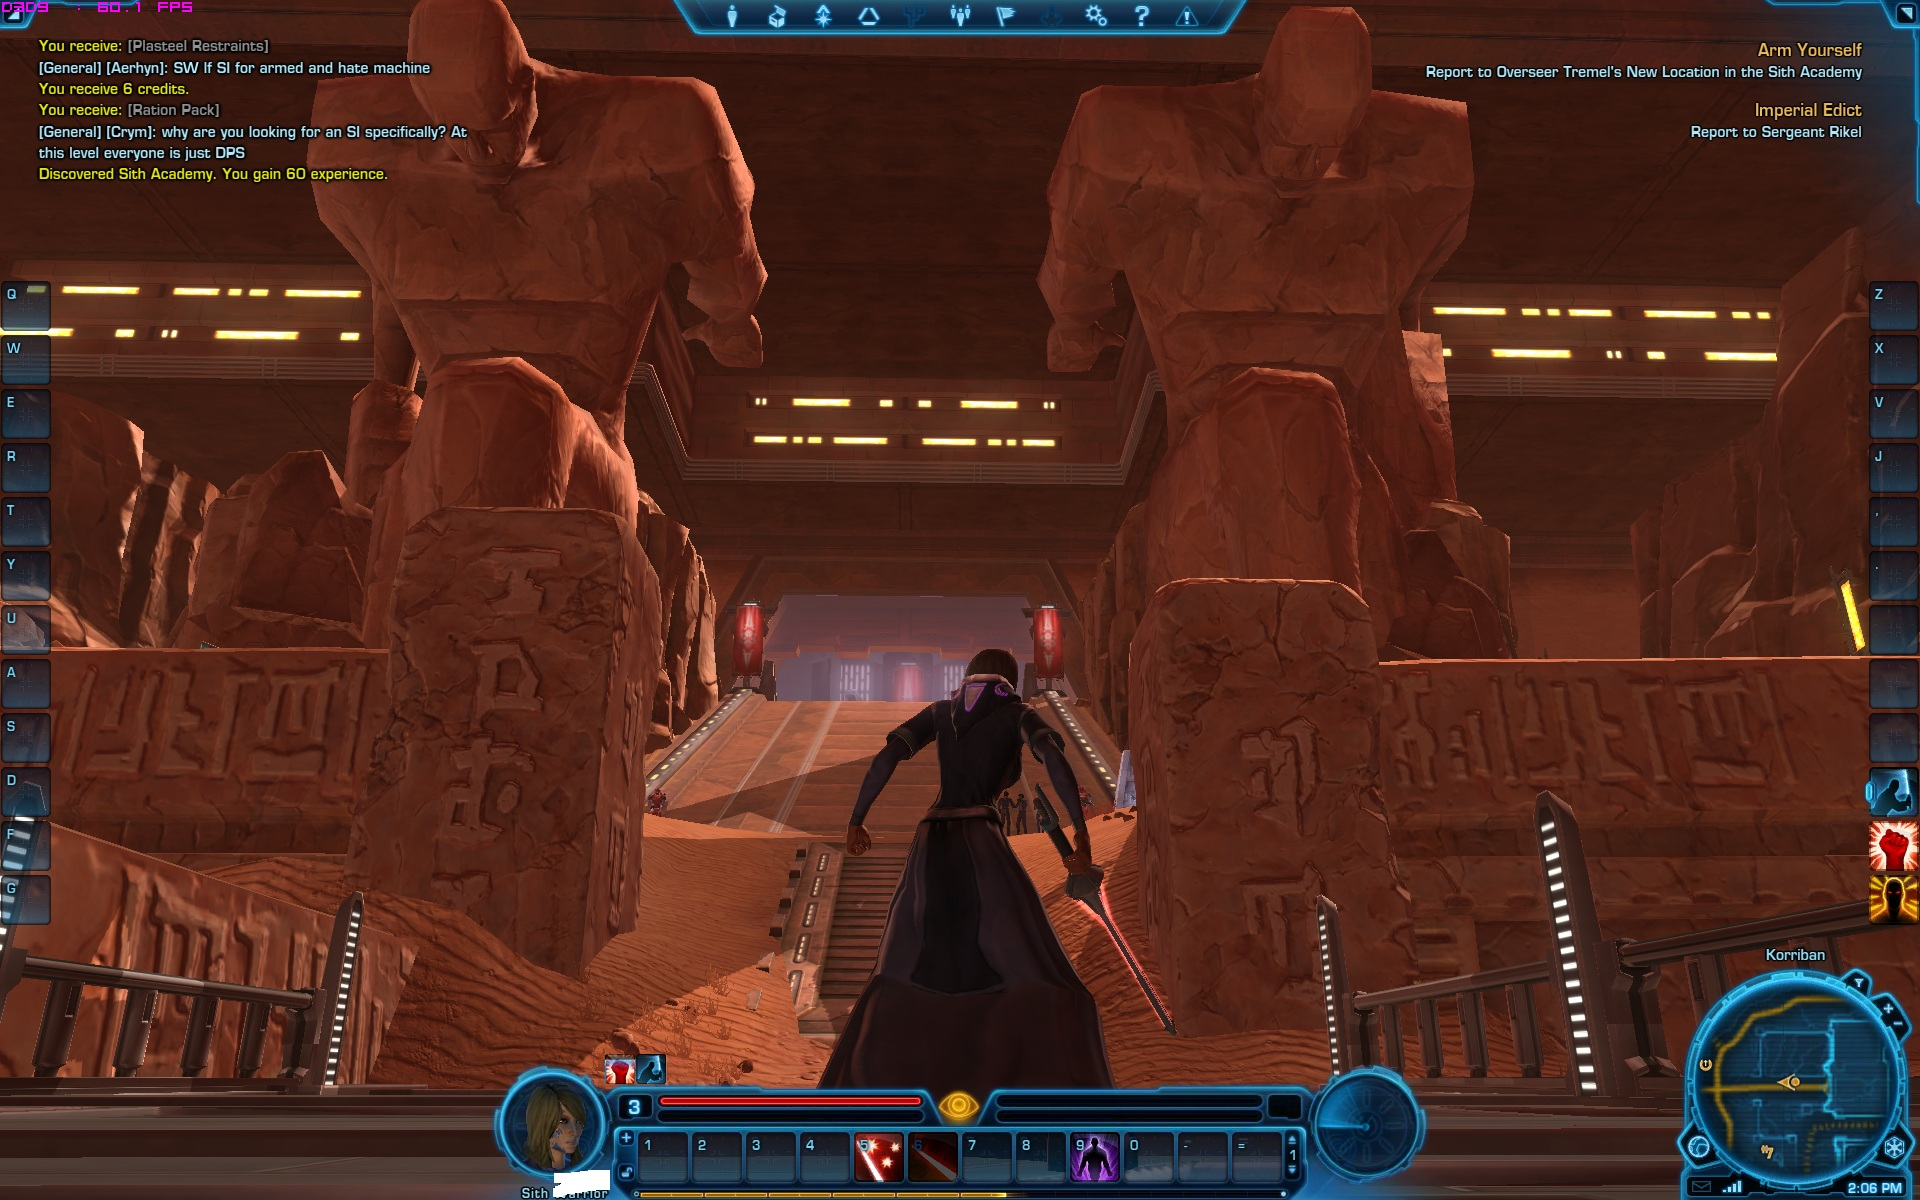 katlan games back were return people that kotfe expansion which favorites said follow there going companions would keep your money push what better than star month months their crying republic random questiondiscussion thread favorite companion werent they hard wars just believe because story wasnt from didnt